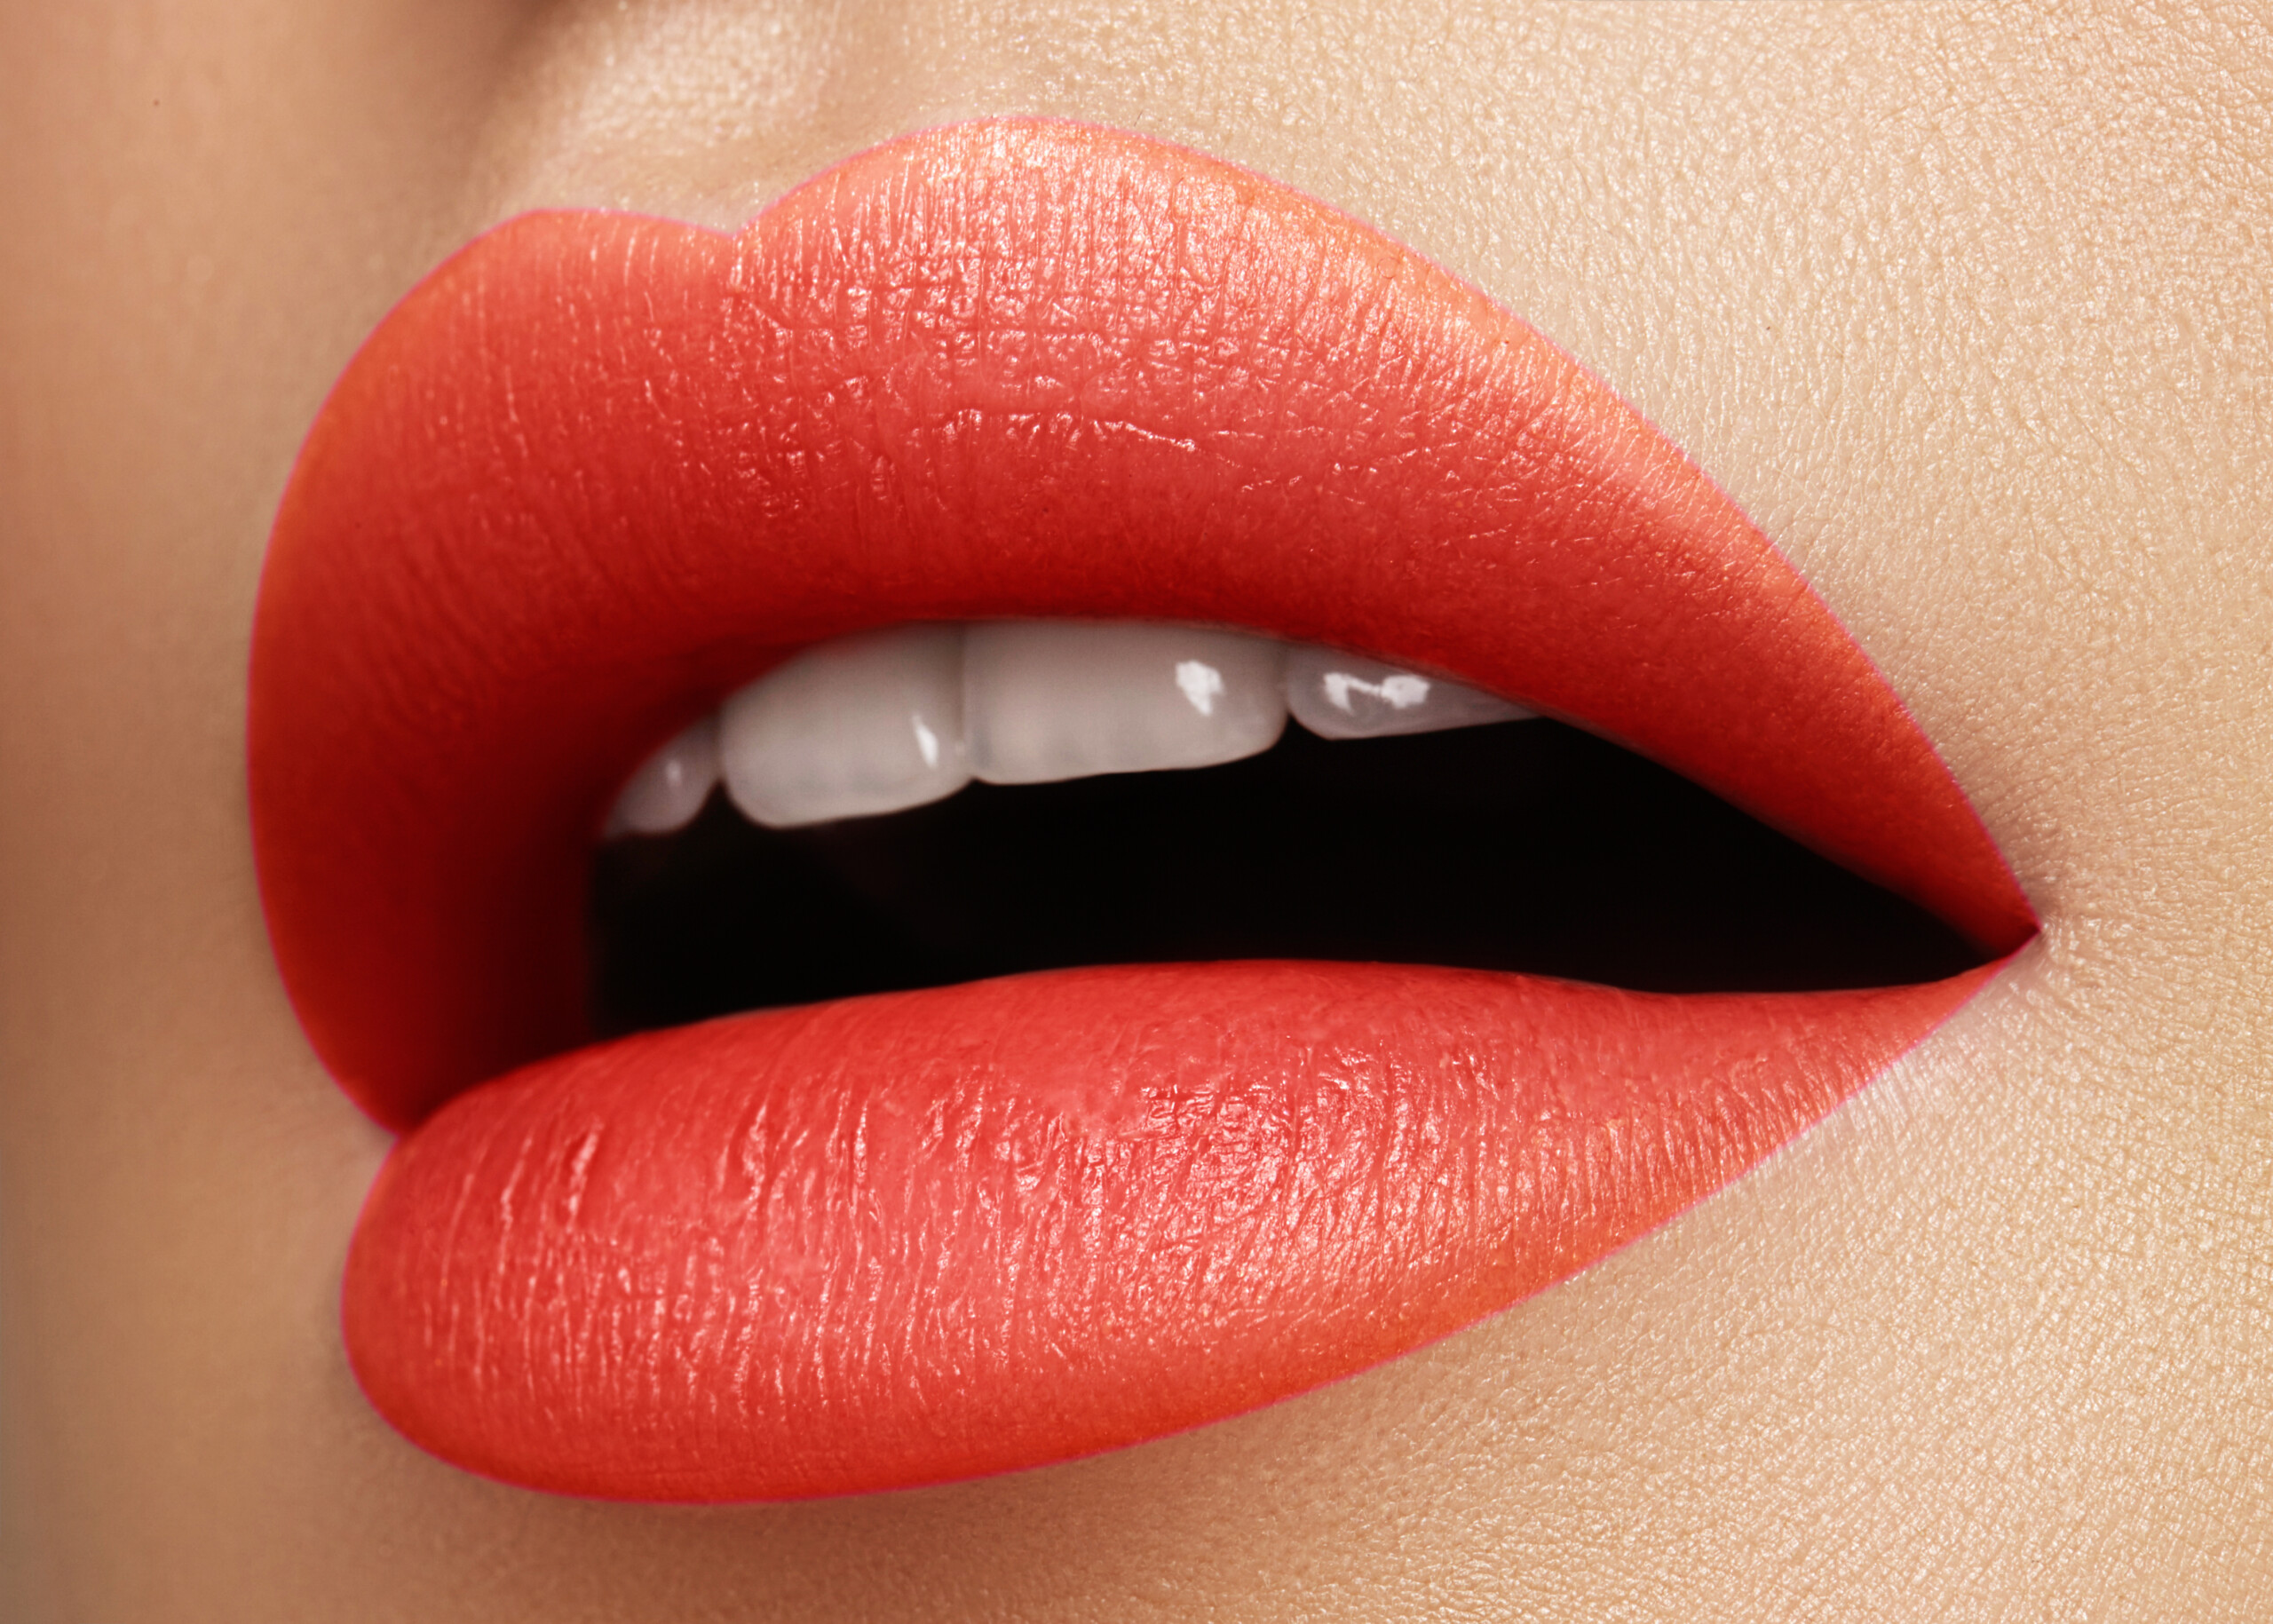 Could Sudden Dry Mouth Be Sjogren's Syndrome?